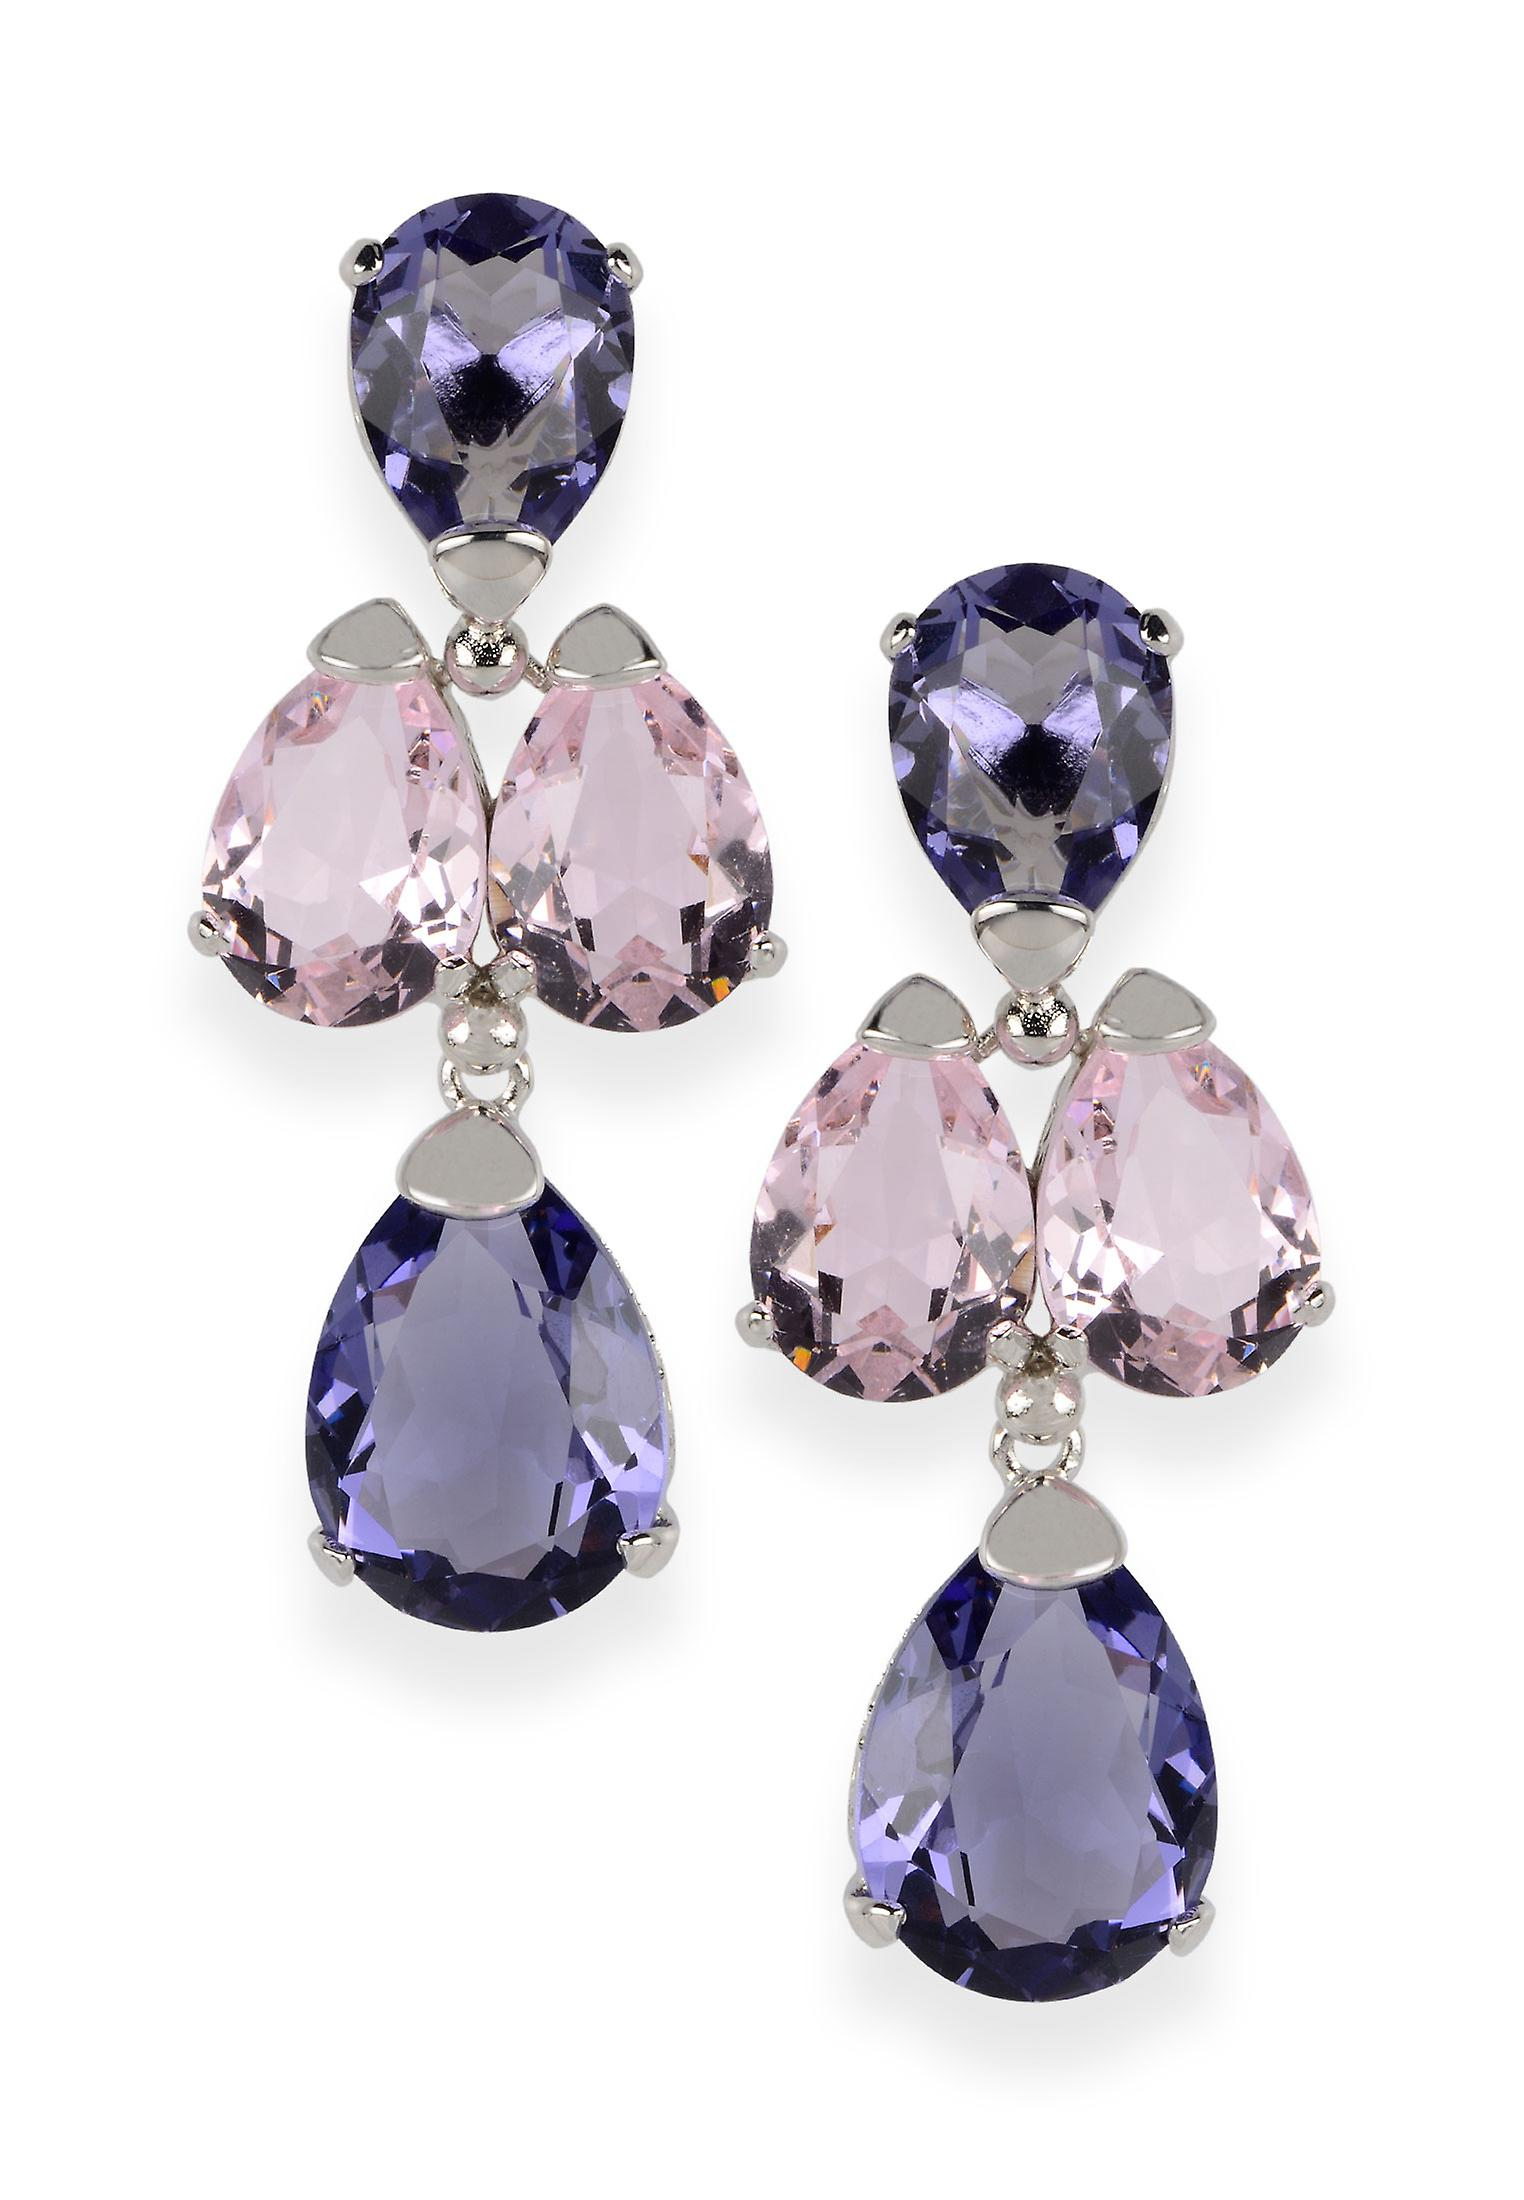 Multicolor earrings with crystals from Swarovski 4644